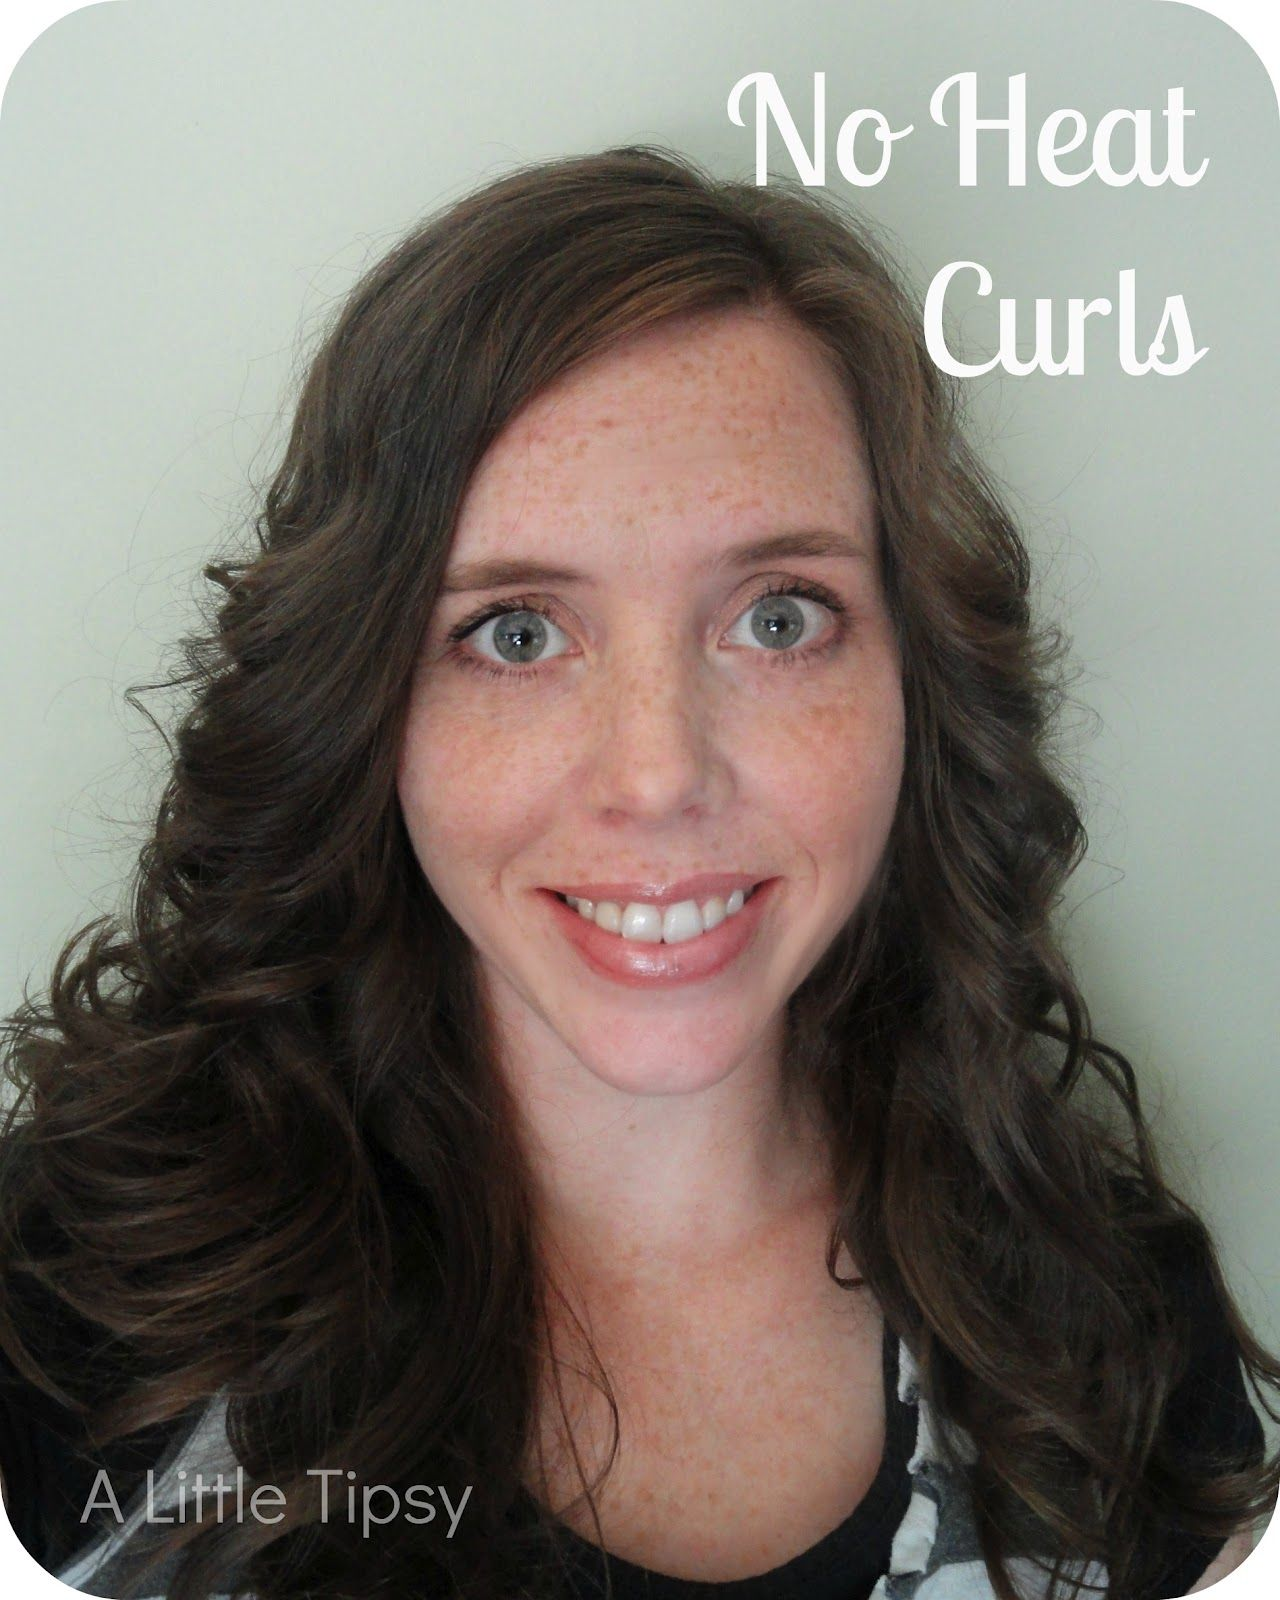 A Little Tipsy: How To Curl Hair Without Heat